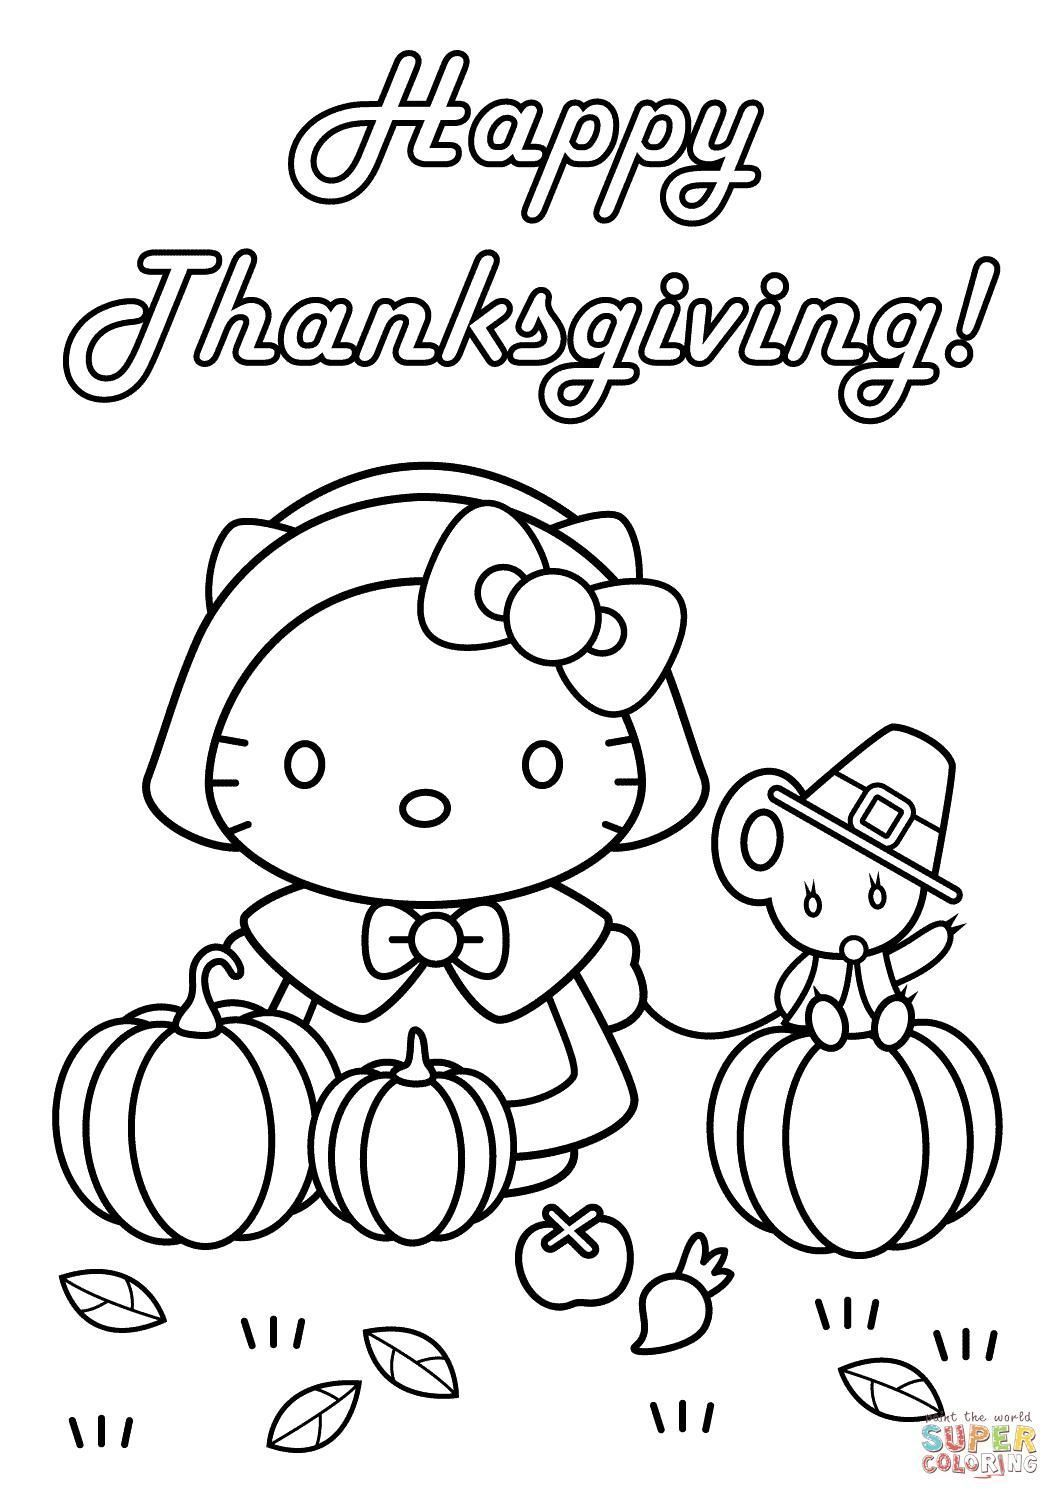 1060x1500 Simple Thanksgiving Coloring Pages Simple Colorings